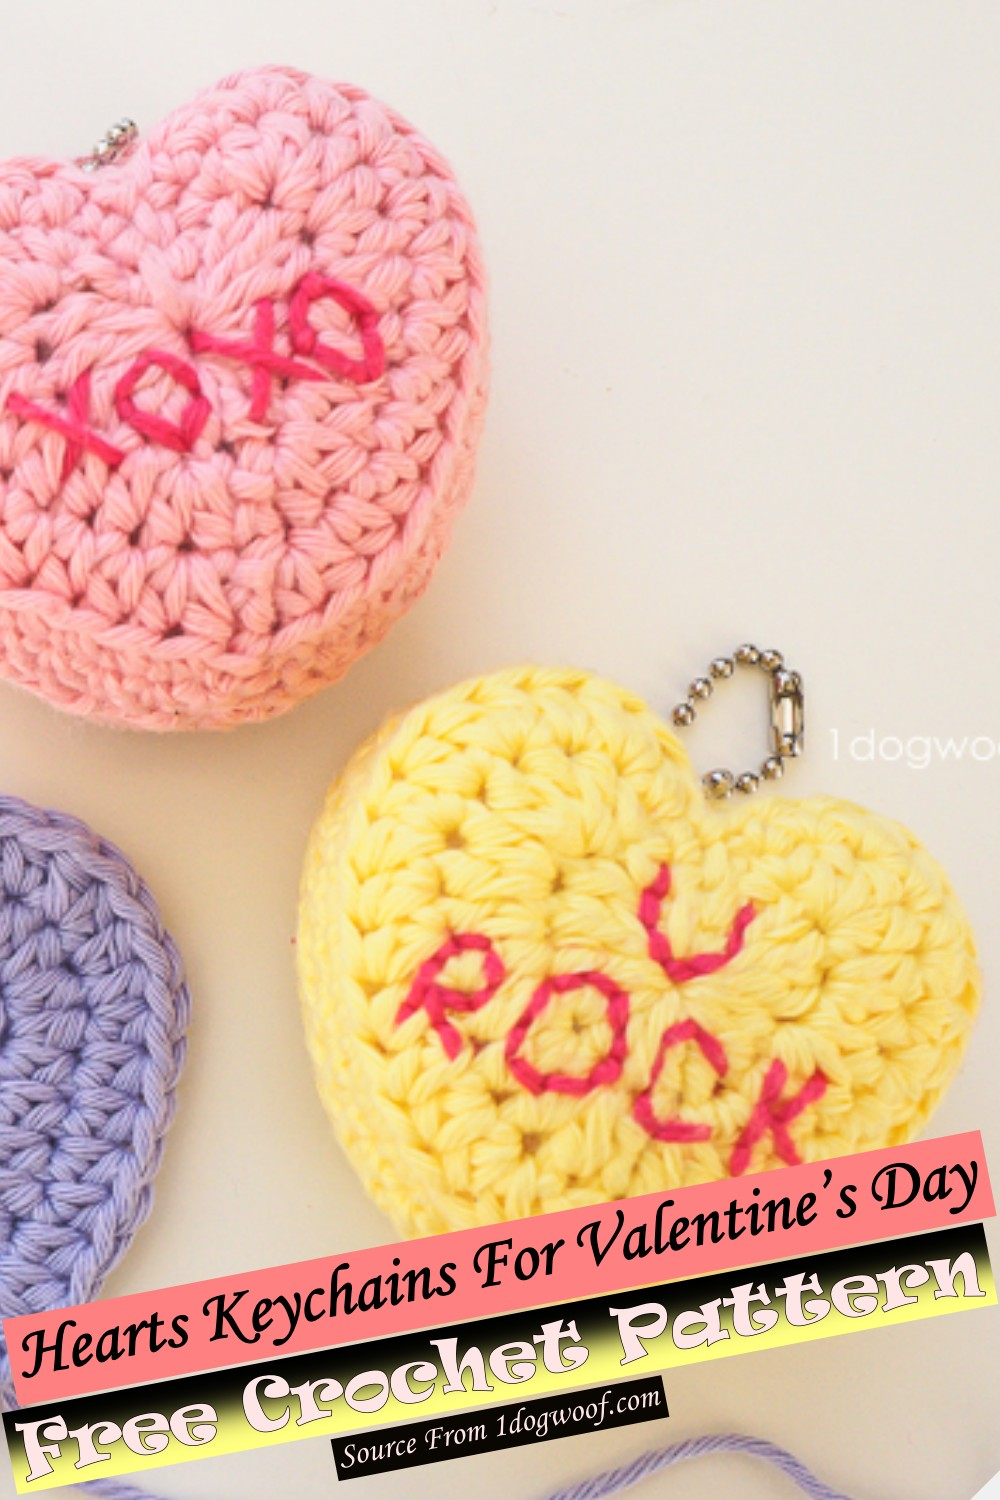 Free Crochet Hearts Keychains For Valentine's Day Pattern